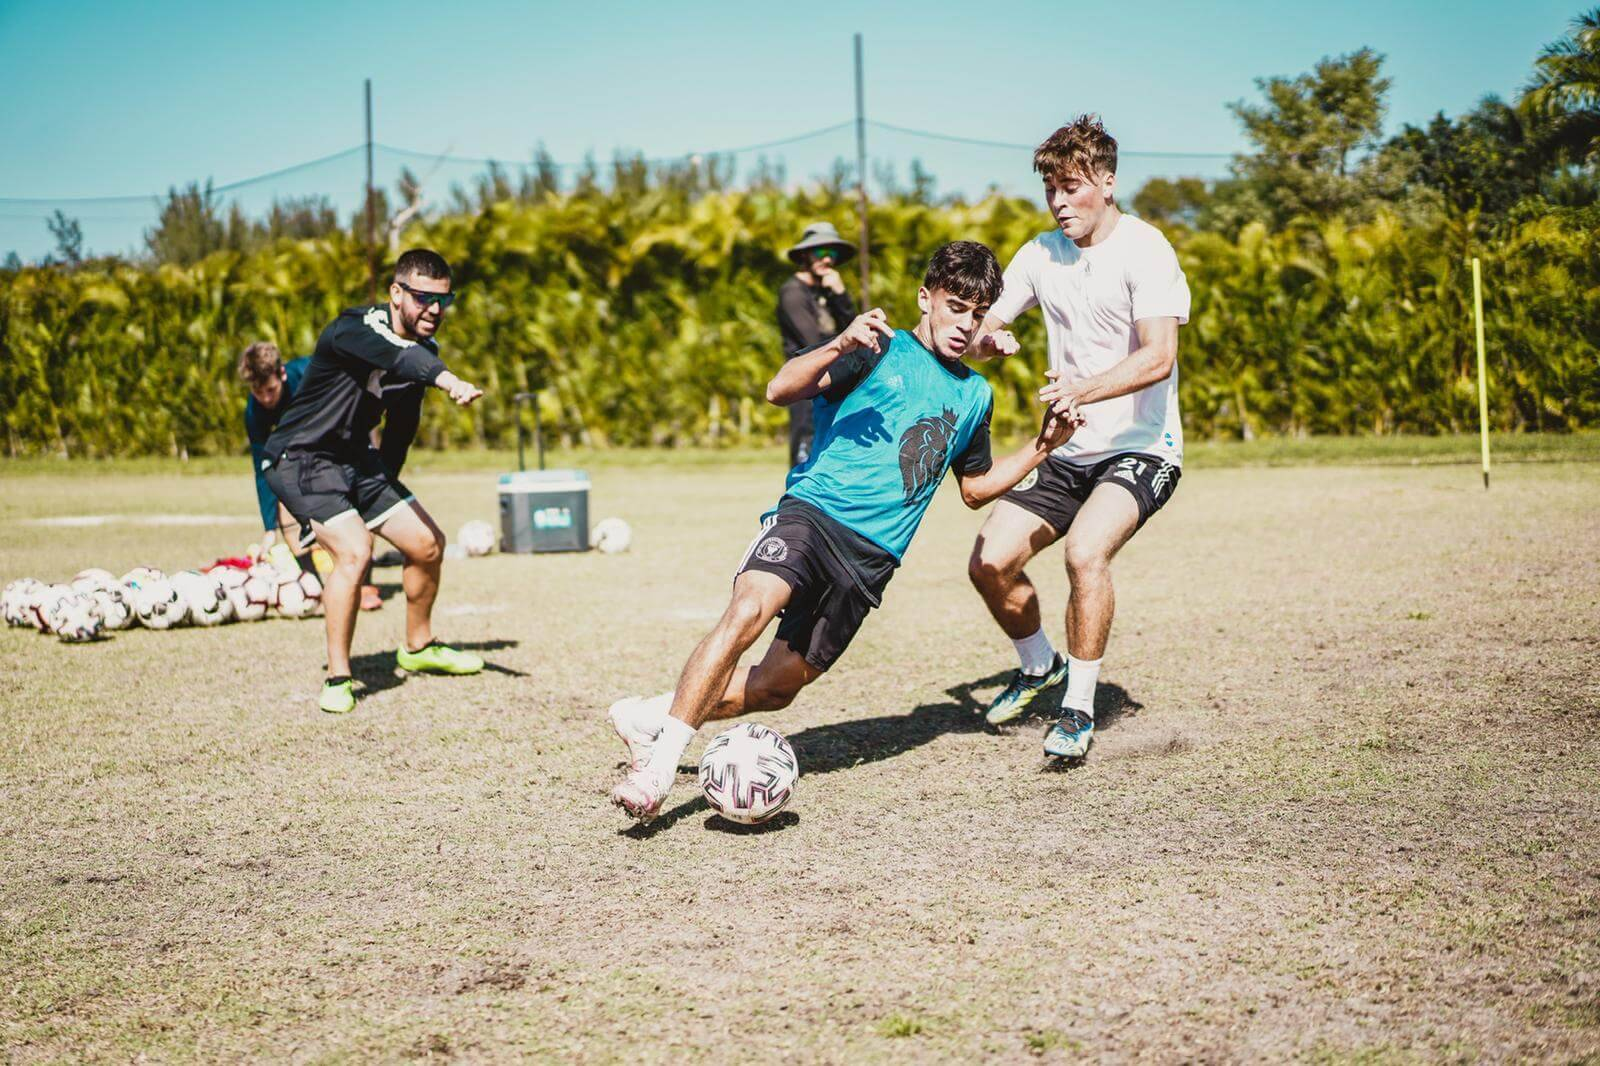 SAT Soccer athletes participate in a drill